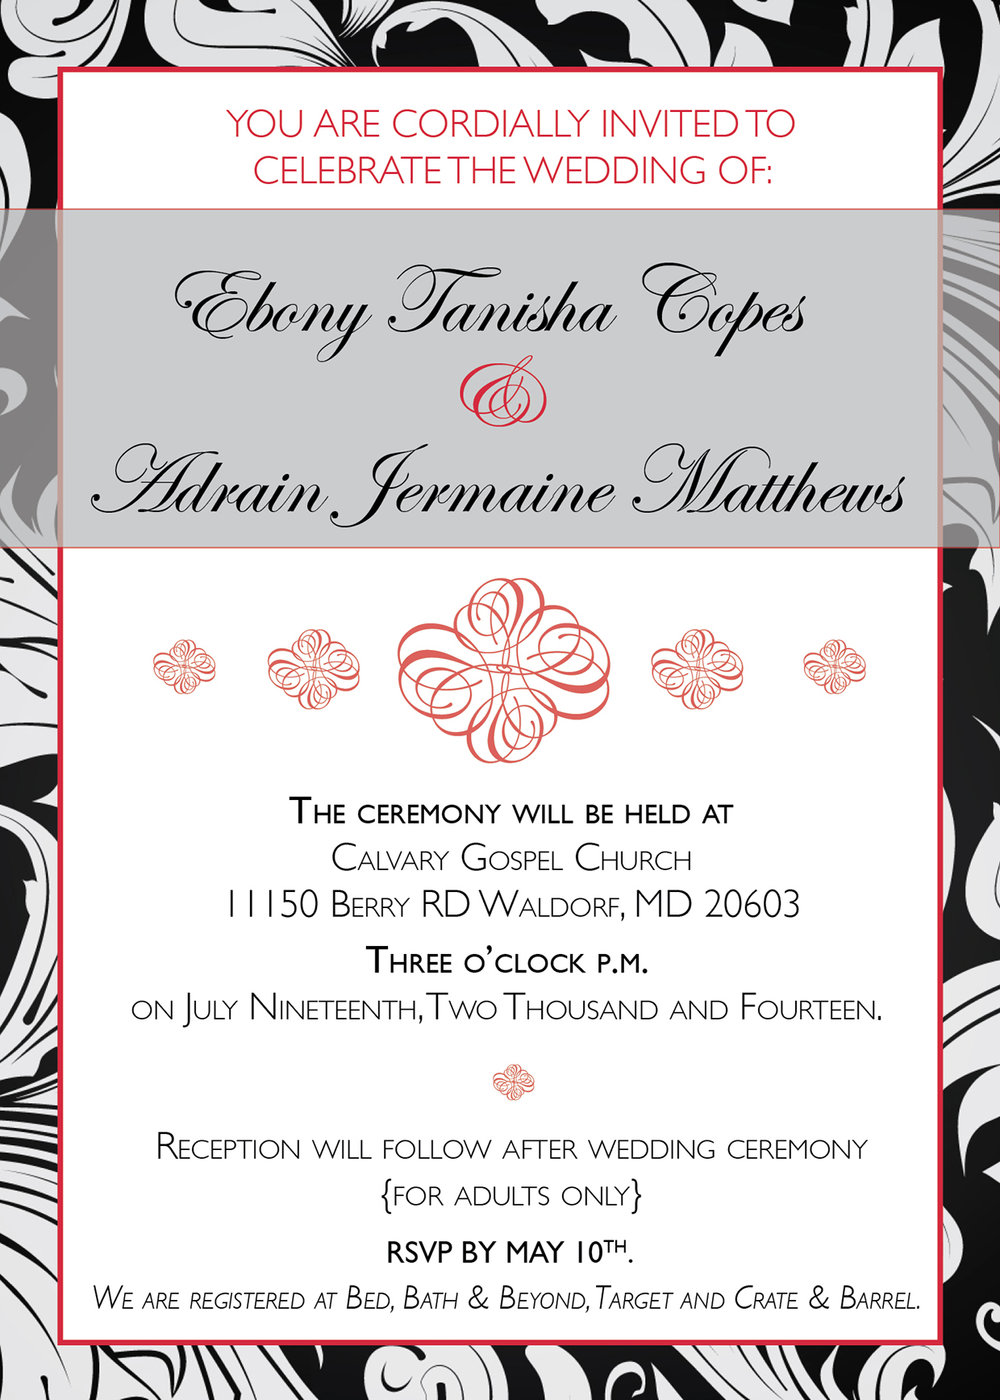 Wedding Invitation - 2014